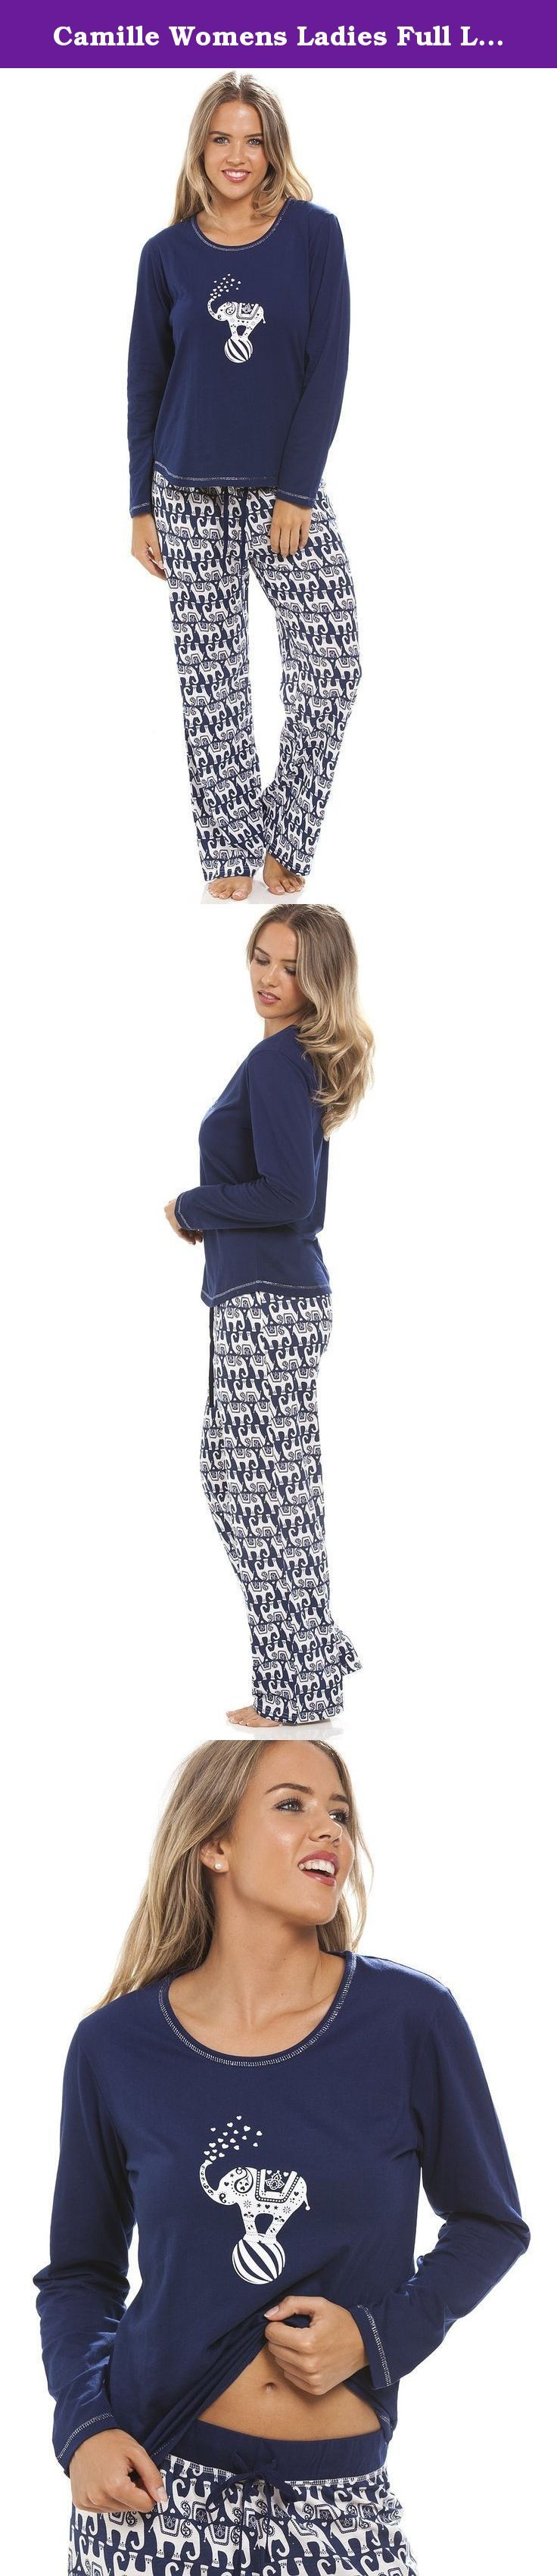 Camille Womens Ladies Full Length Long Sleeve Elephant Motif Navy Blue Pyjama Set 14/16 BLUE. Long Sleeve Nightdress Also Available In Same Design.